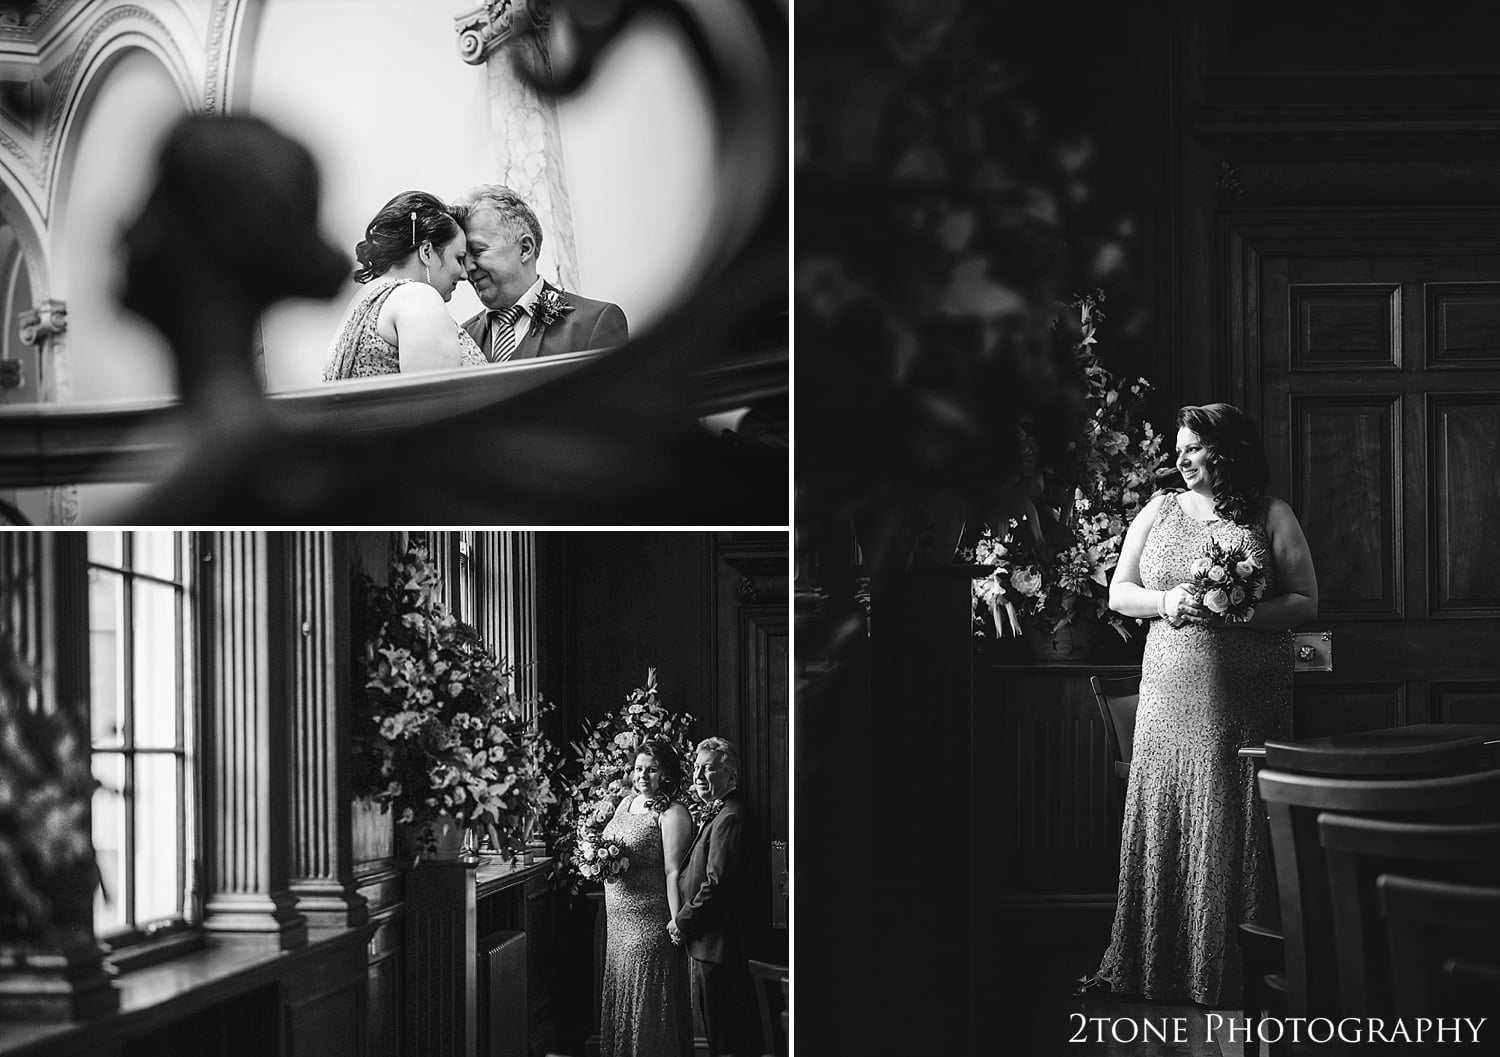 The beautiful bride.  Wedding Photography at the Lothian Chambers in Edinburgh by 2tone Photography